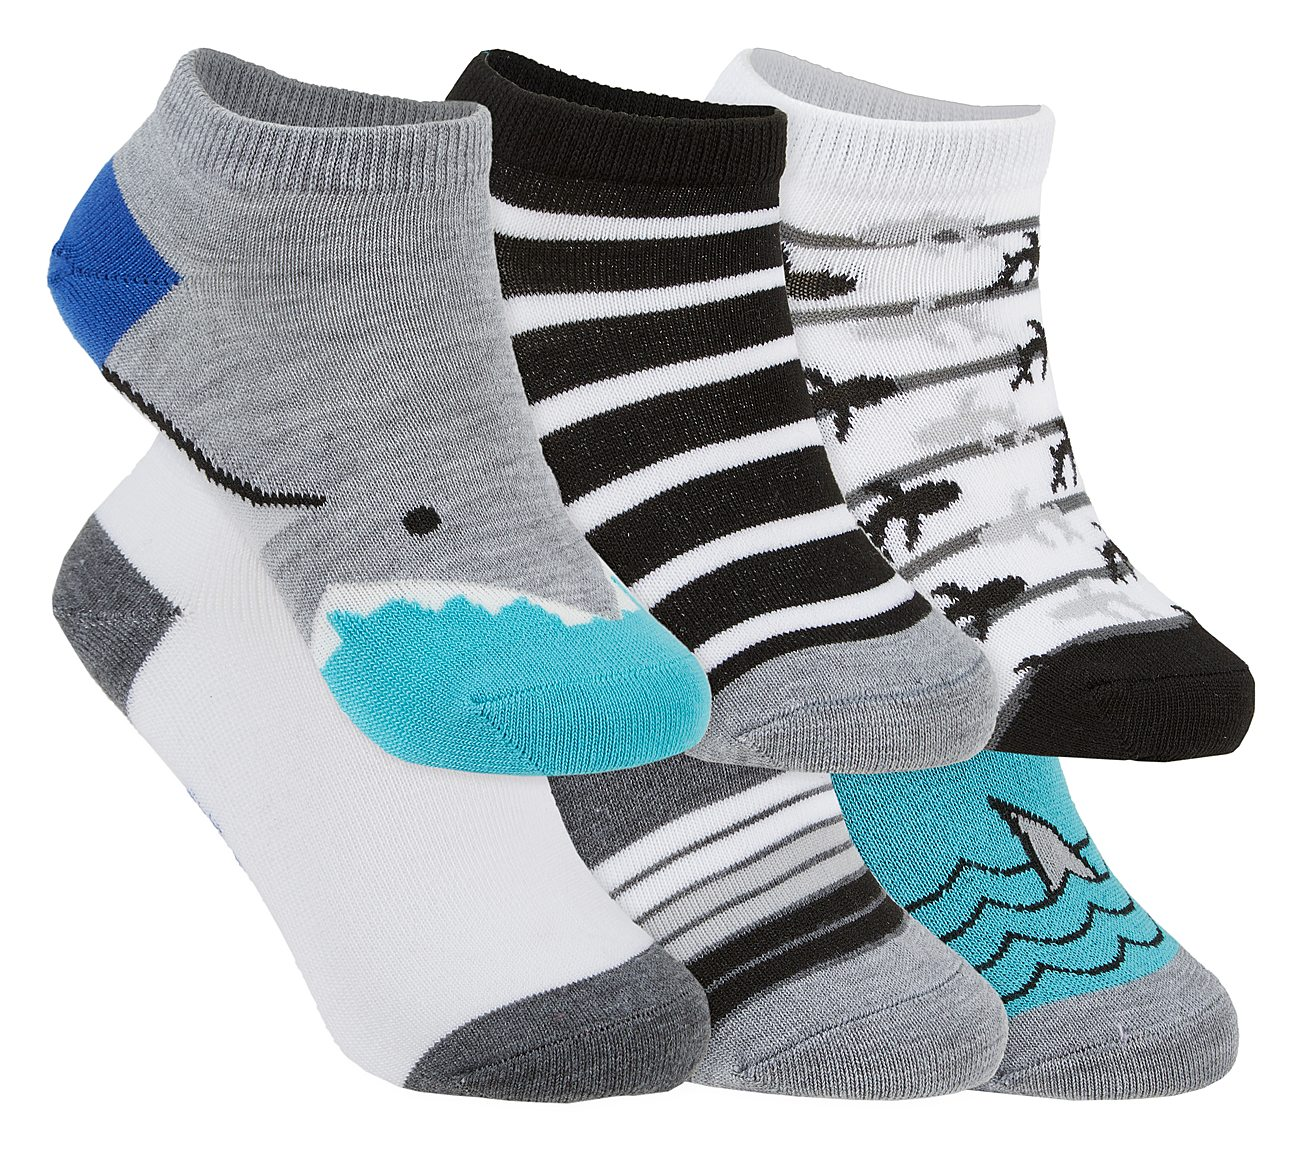 6 Pack Shark Accented Low Cut Socks